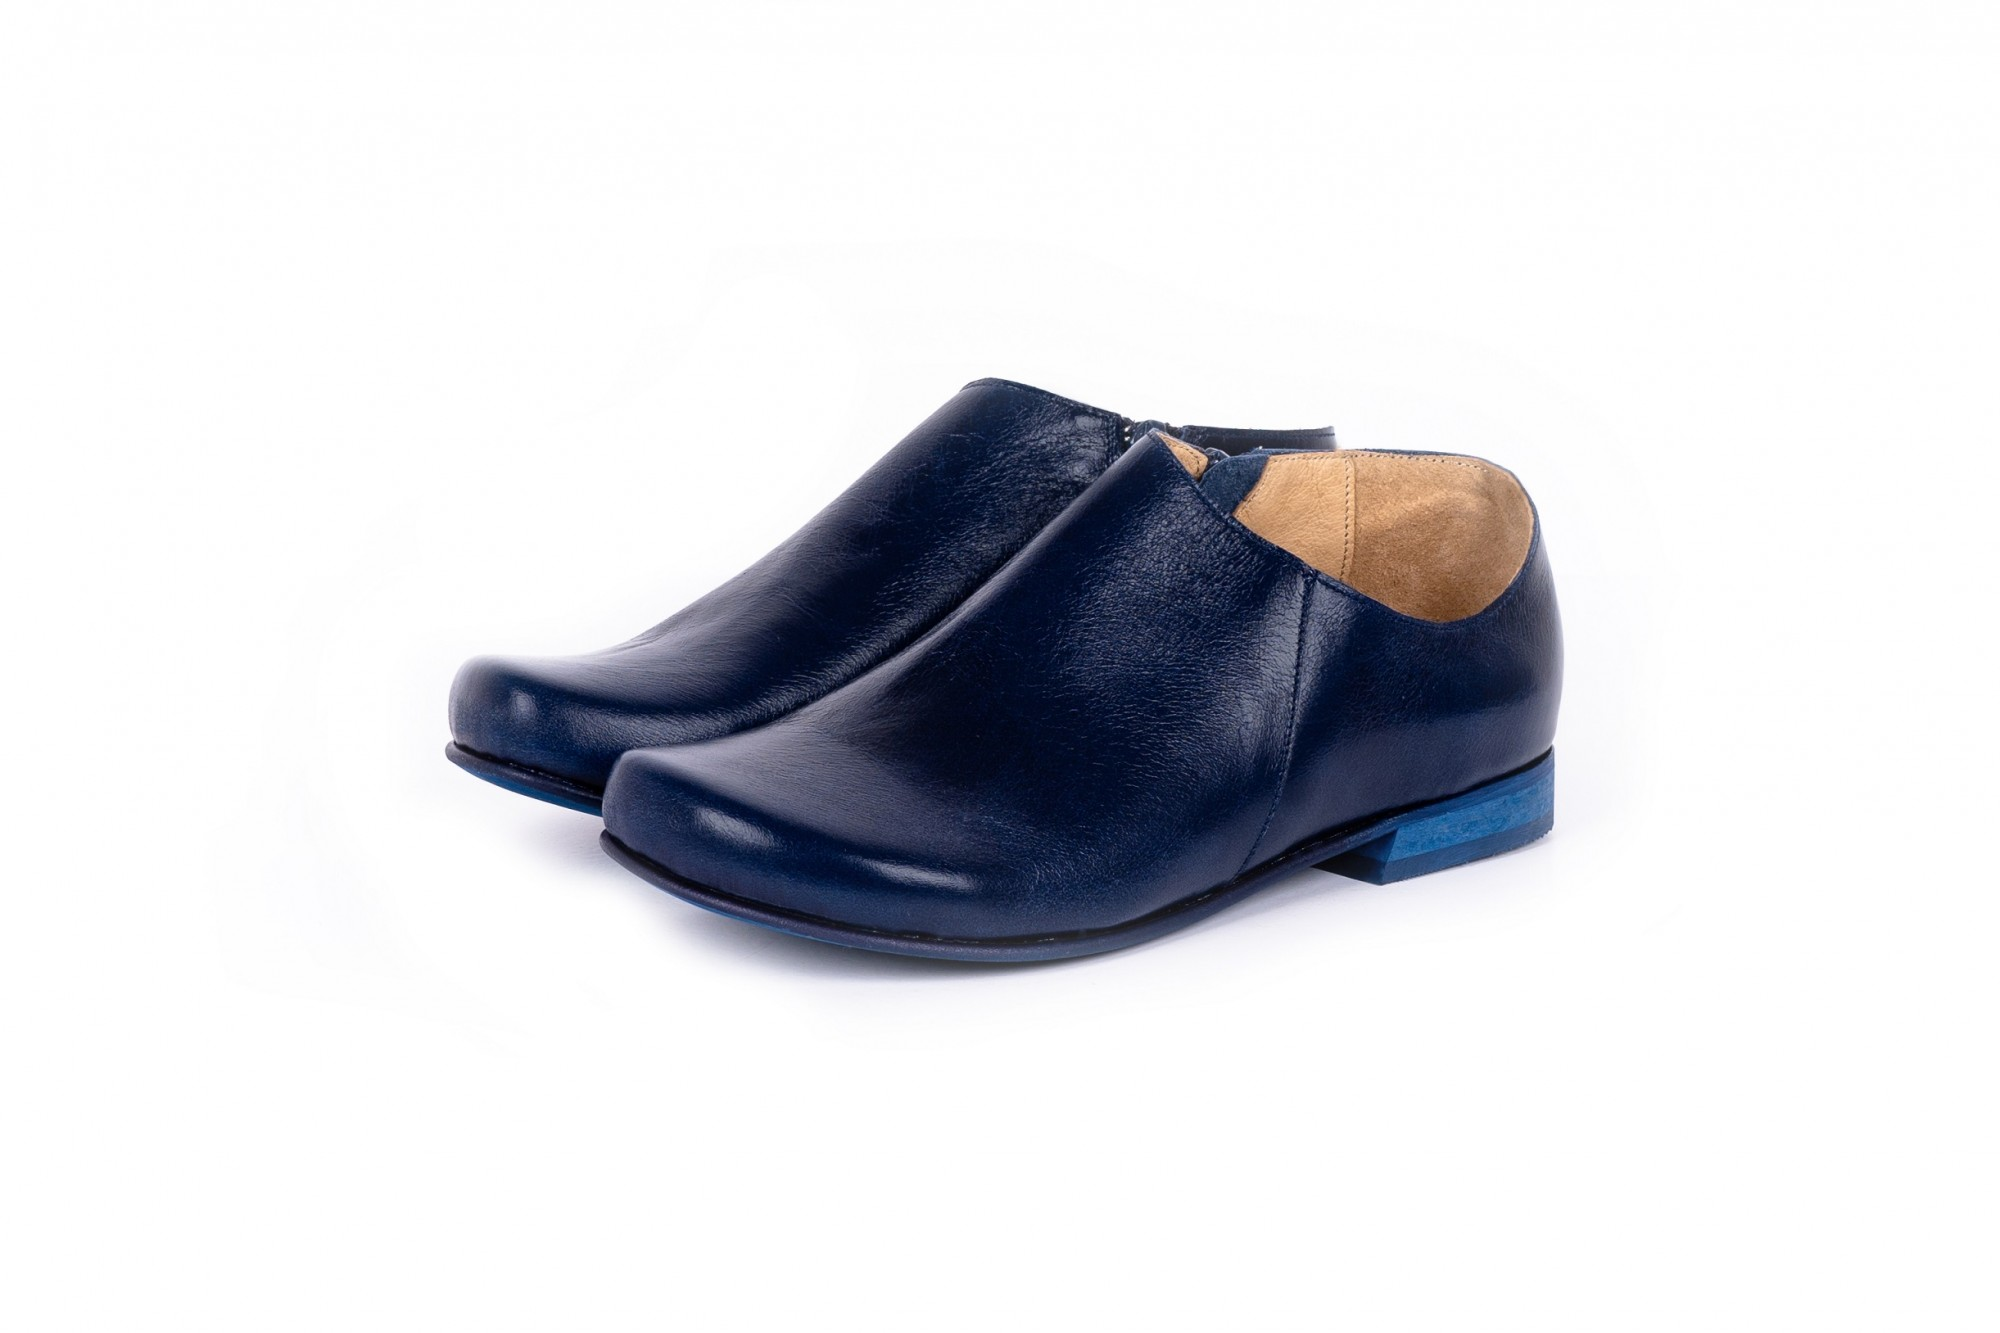 Handmade leather Shoes - Women's